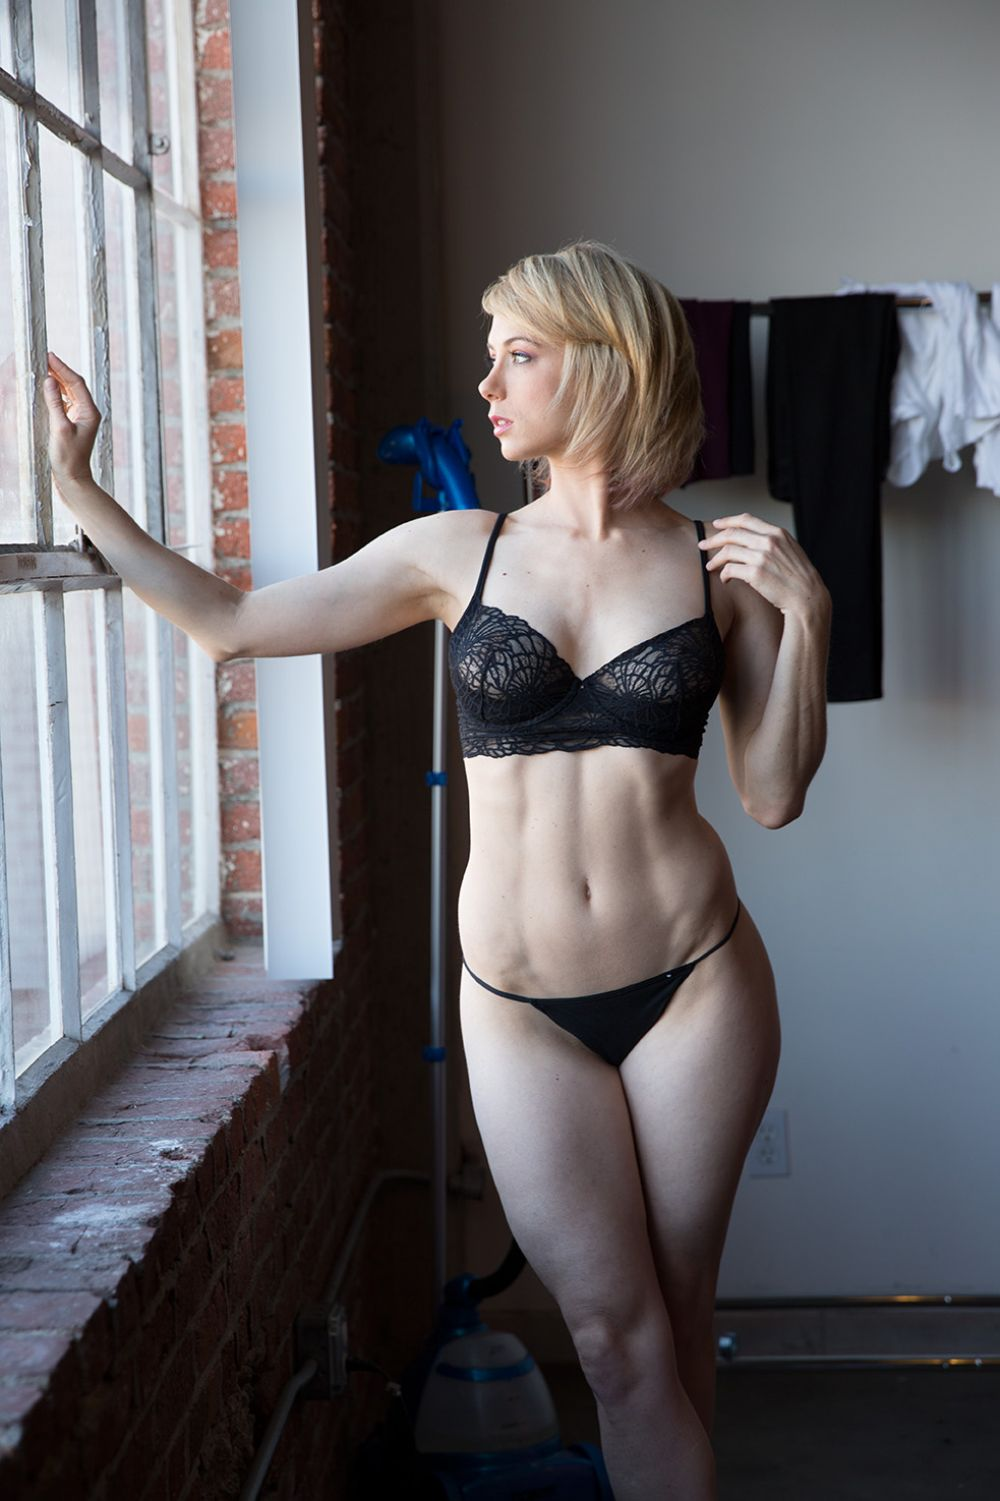 ILIZA SHLESINGER on the Set of a Photoshoot